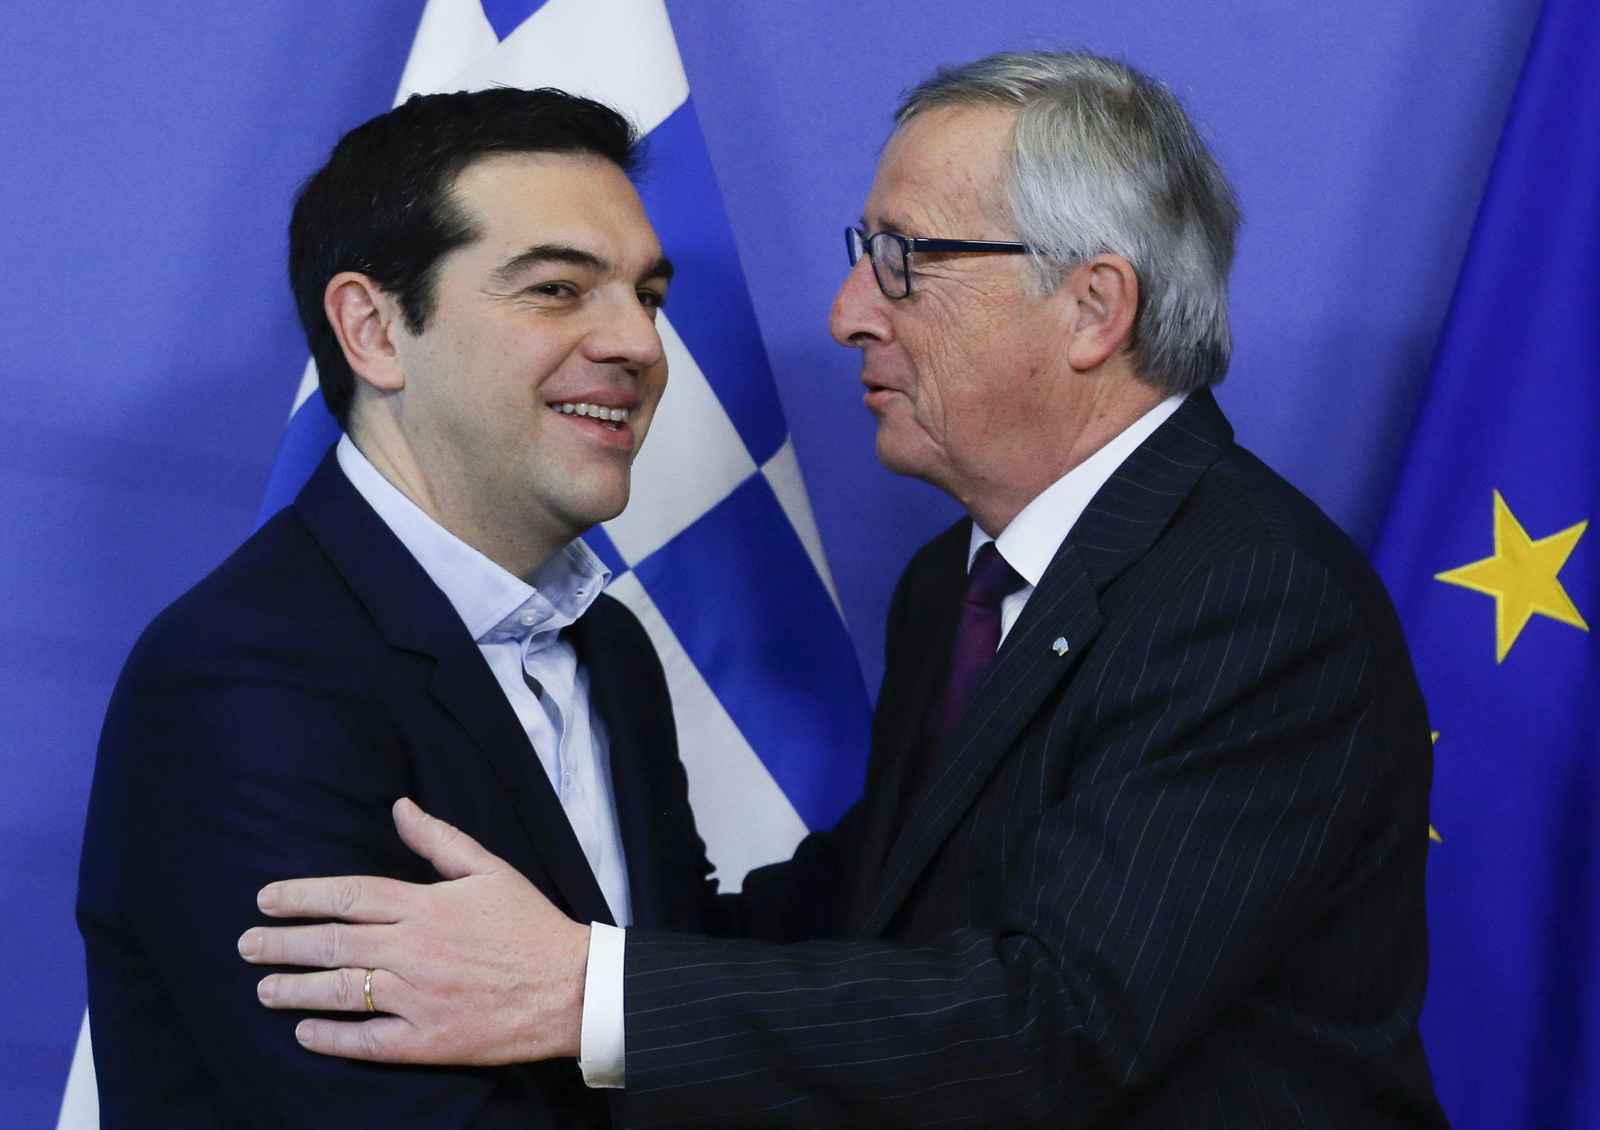 European Commission President Jean Claude Juncker welcomes Greek Prime Minister Alexis Tsipras